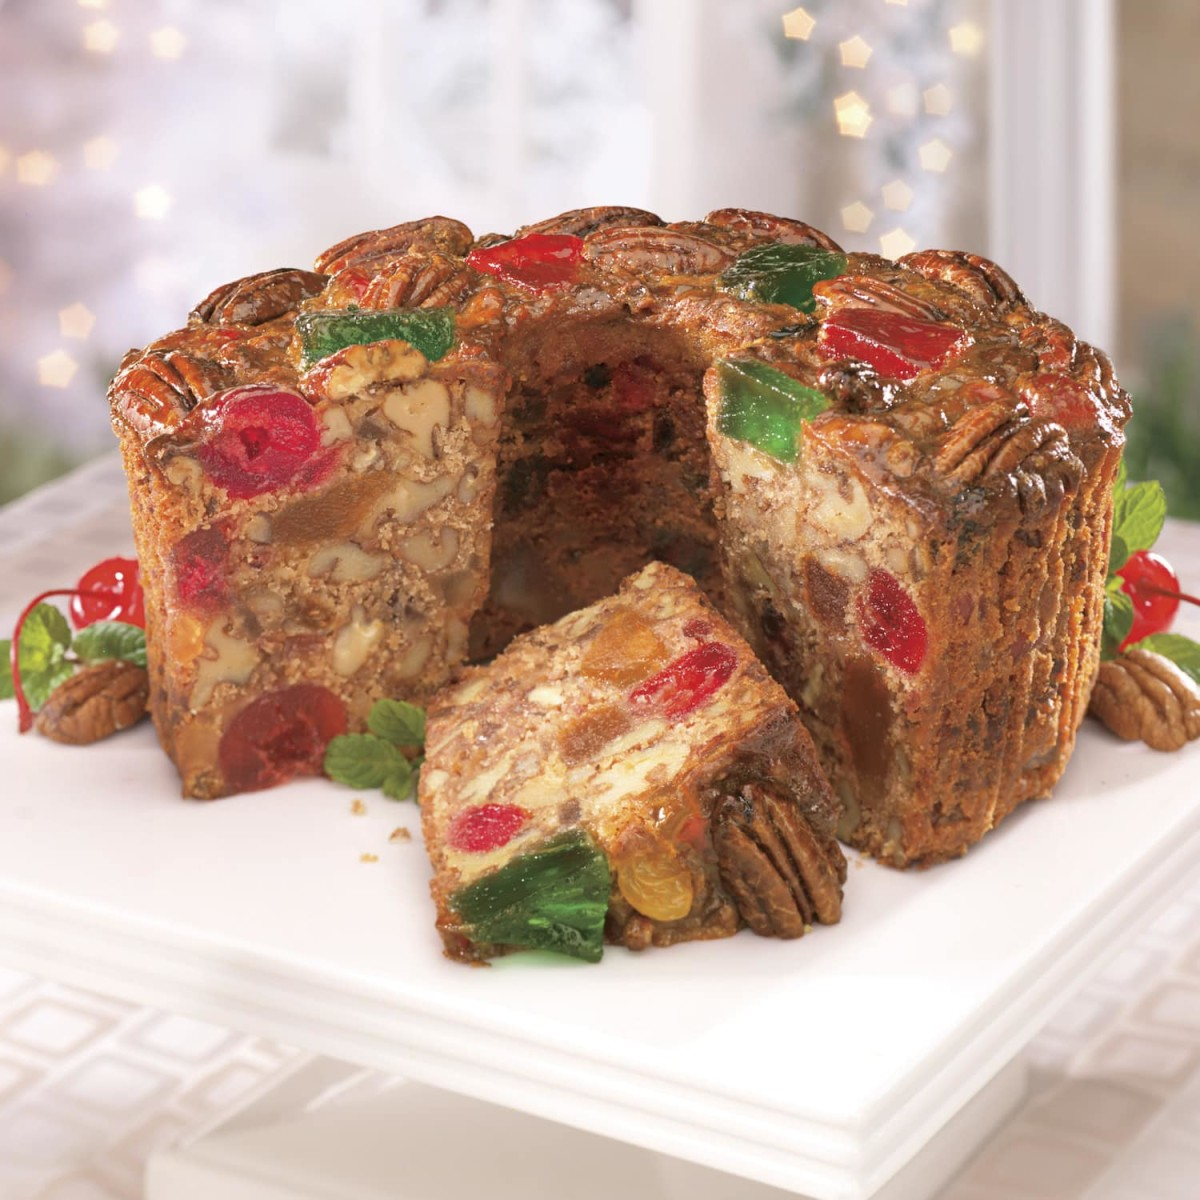 Some people don't like receiving a fruitcake as a Christmas gift.